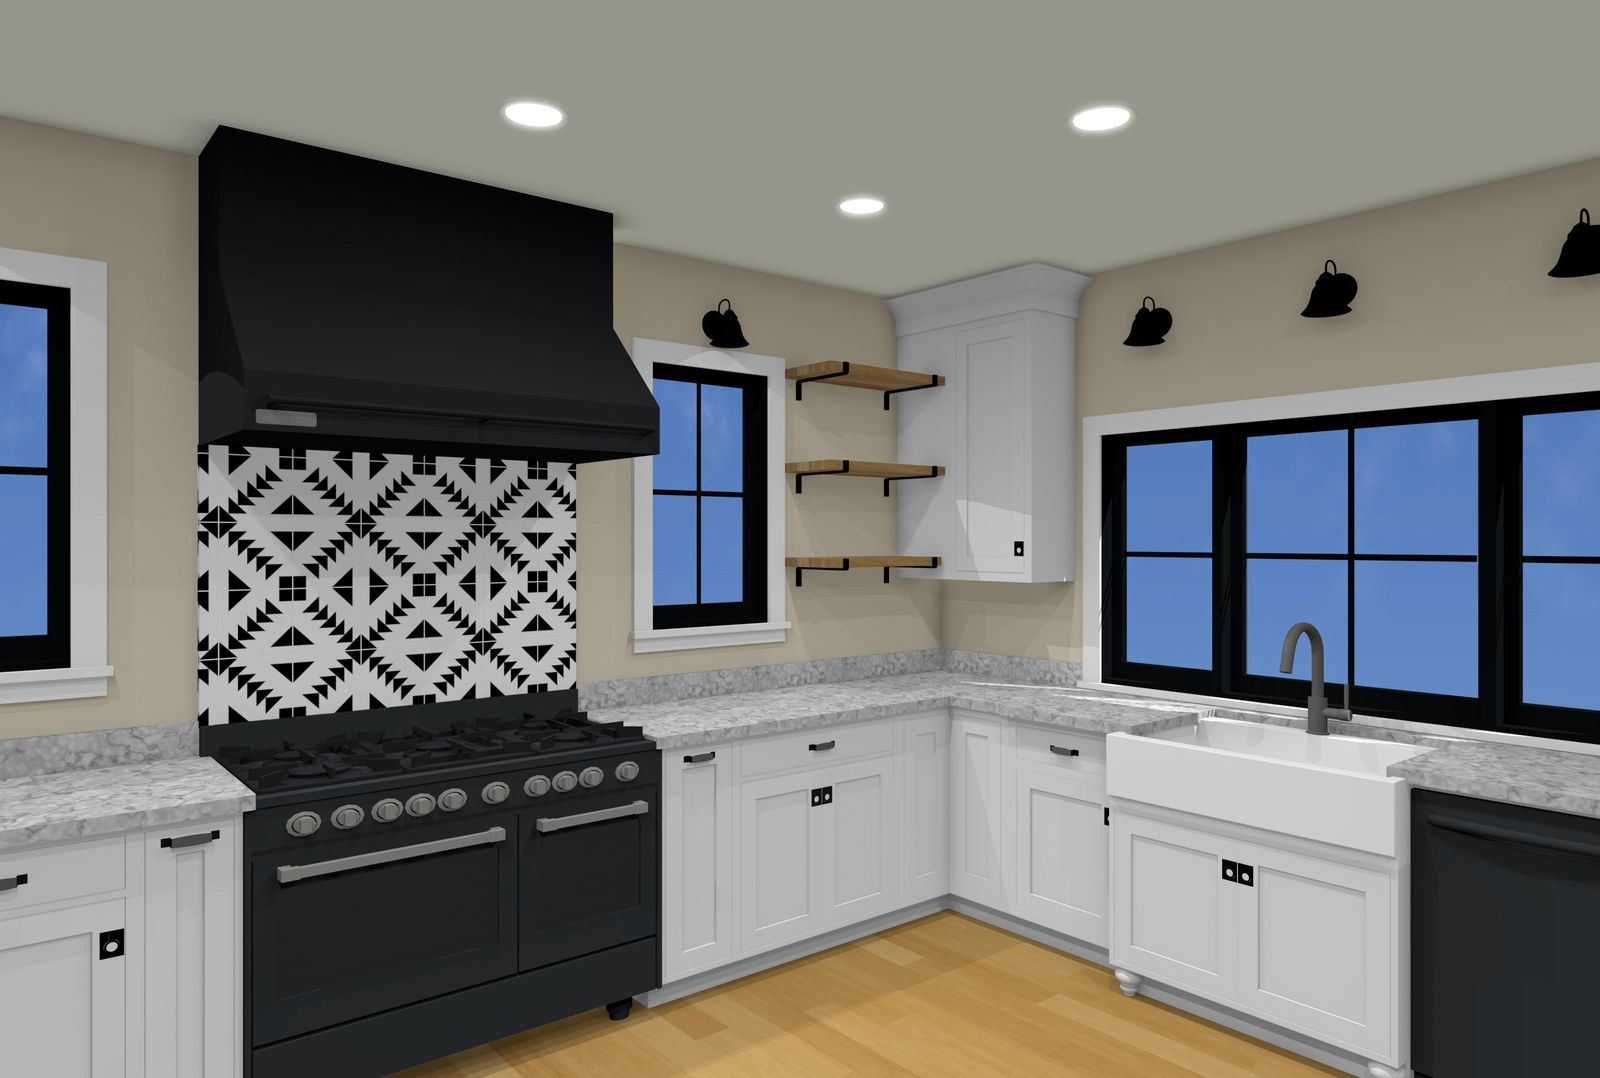 3D Rendering of Black and White Kitchen